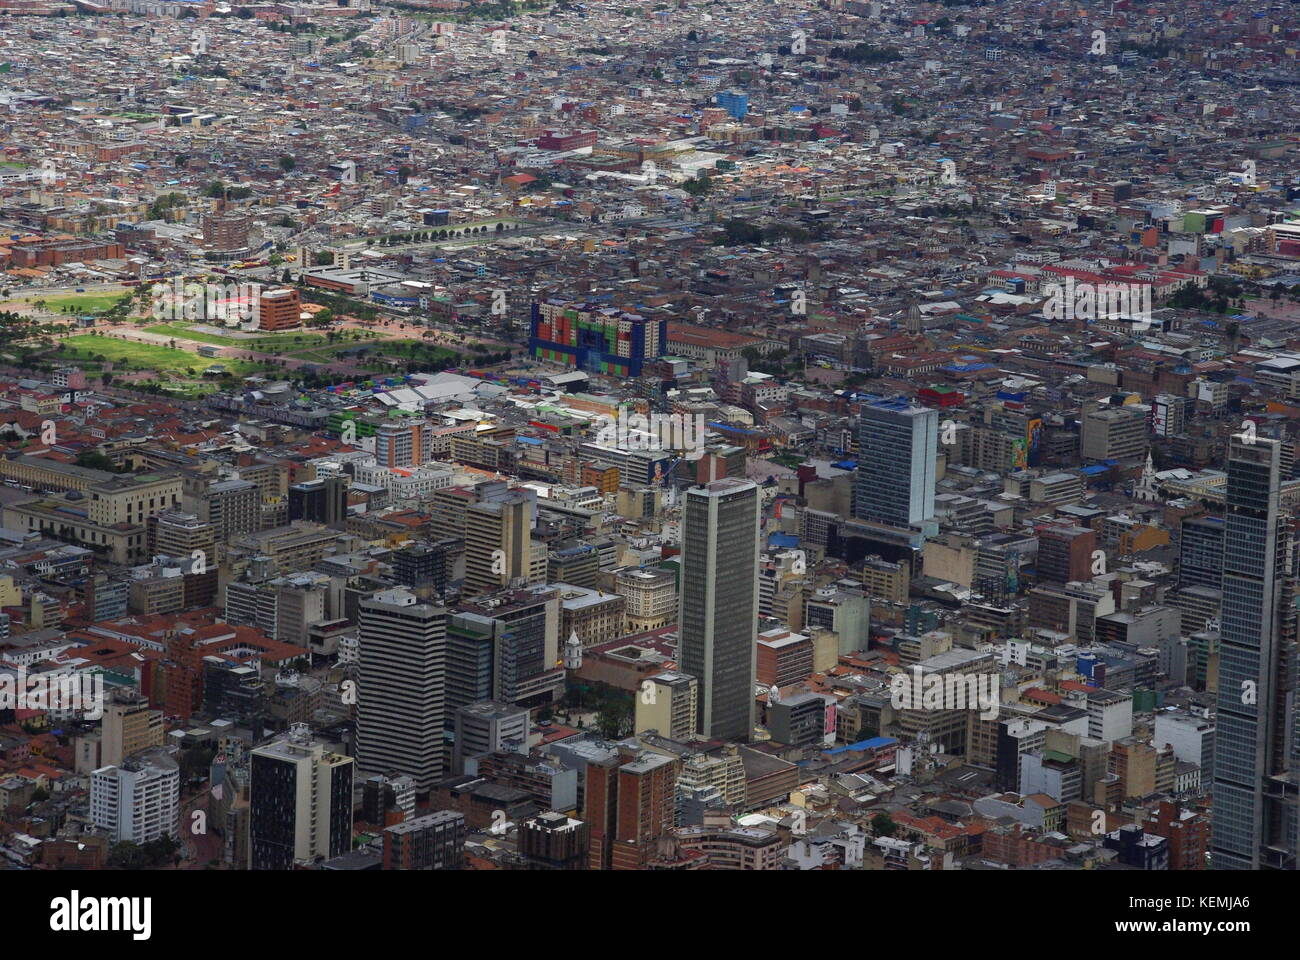 The City Centre of Bogota from Monserrat, Colombia - Stock Image